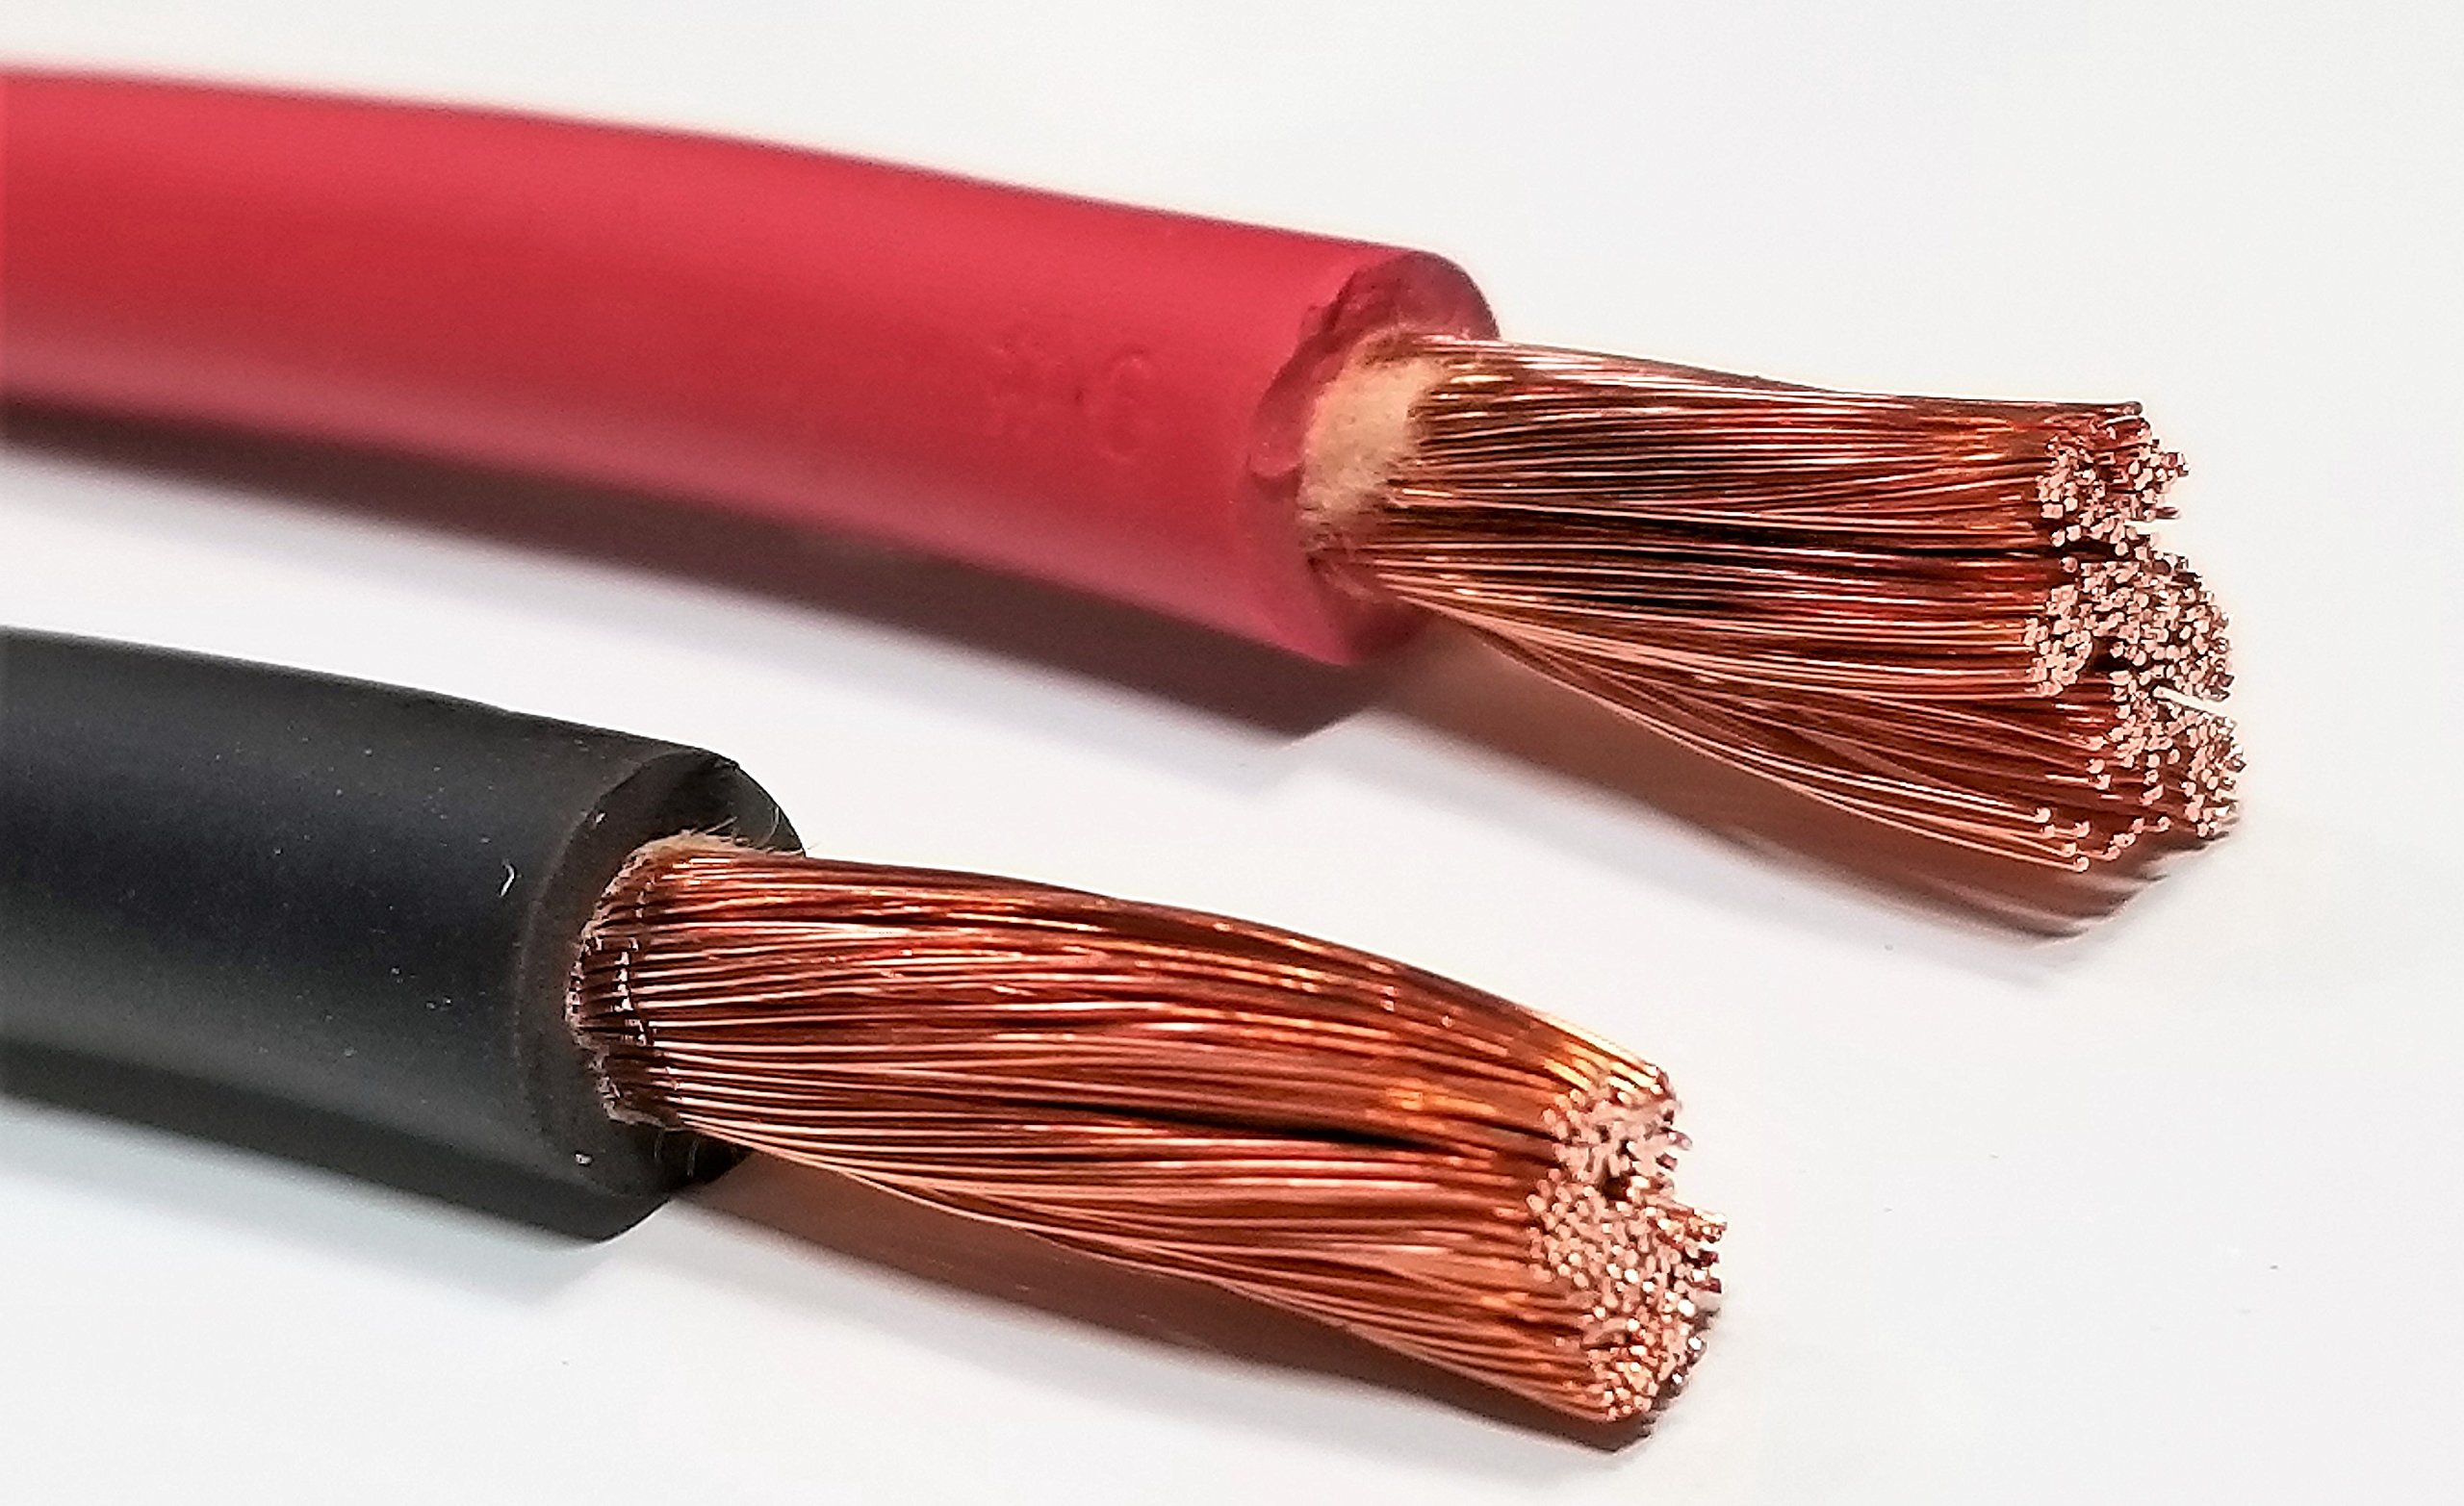 AC/DC WIRE 6 Gauge 6 AWG Welding Battery Pure Copper Flexible Cable Wire -  Car, Inverter, RV, Trucks (15 ft BLACK + 15 ft RED) - - Amazon.comAmazon.com